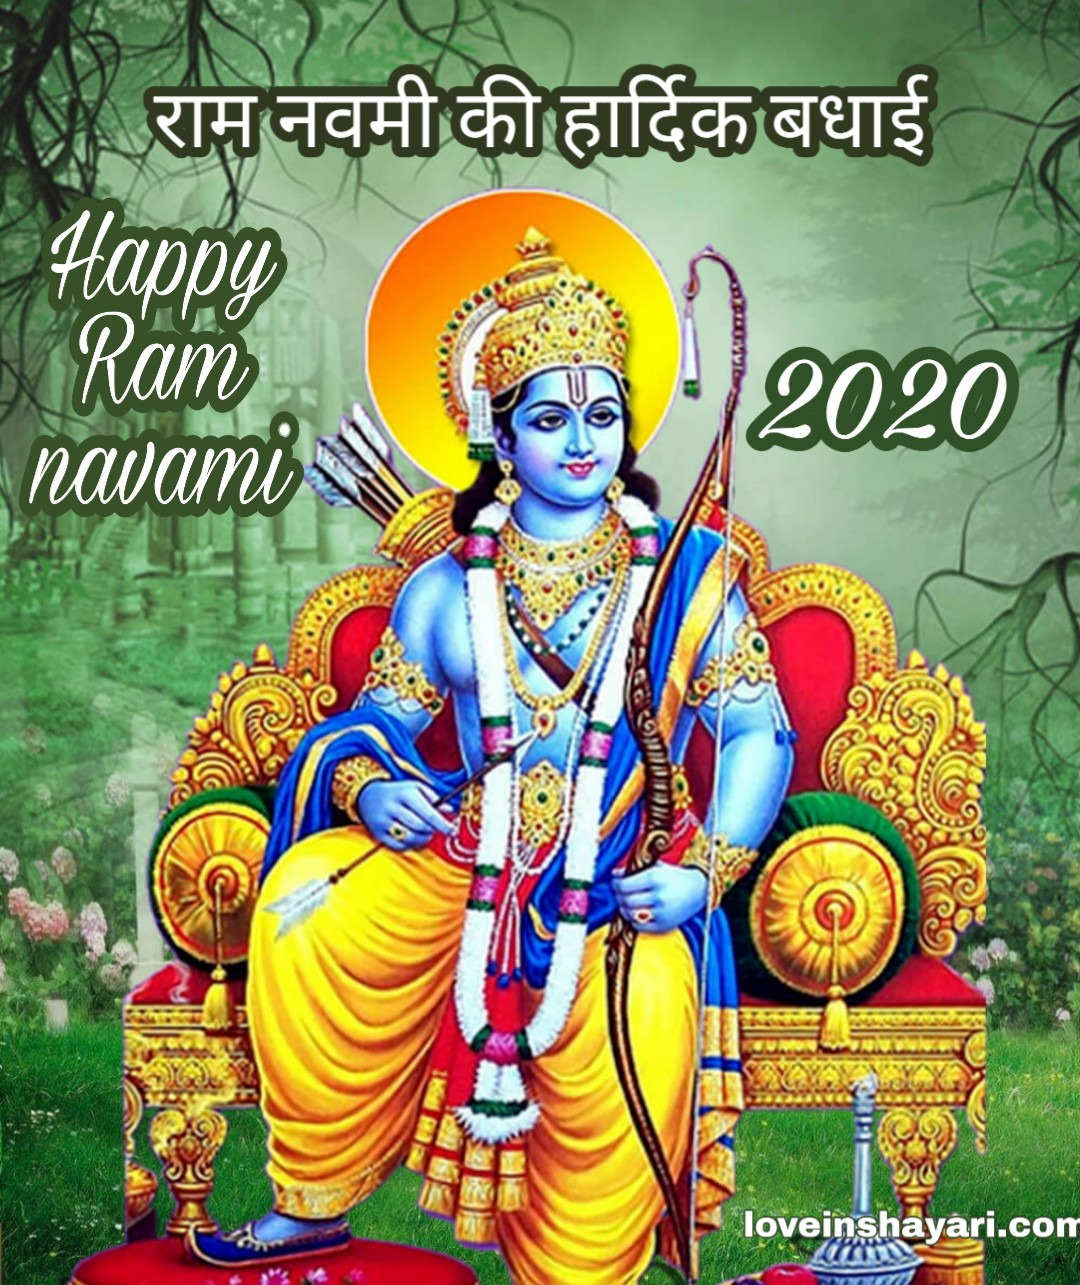 Photo of Ram navami status whatsapp status 2020